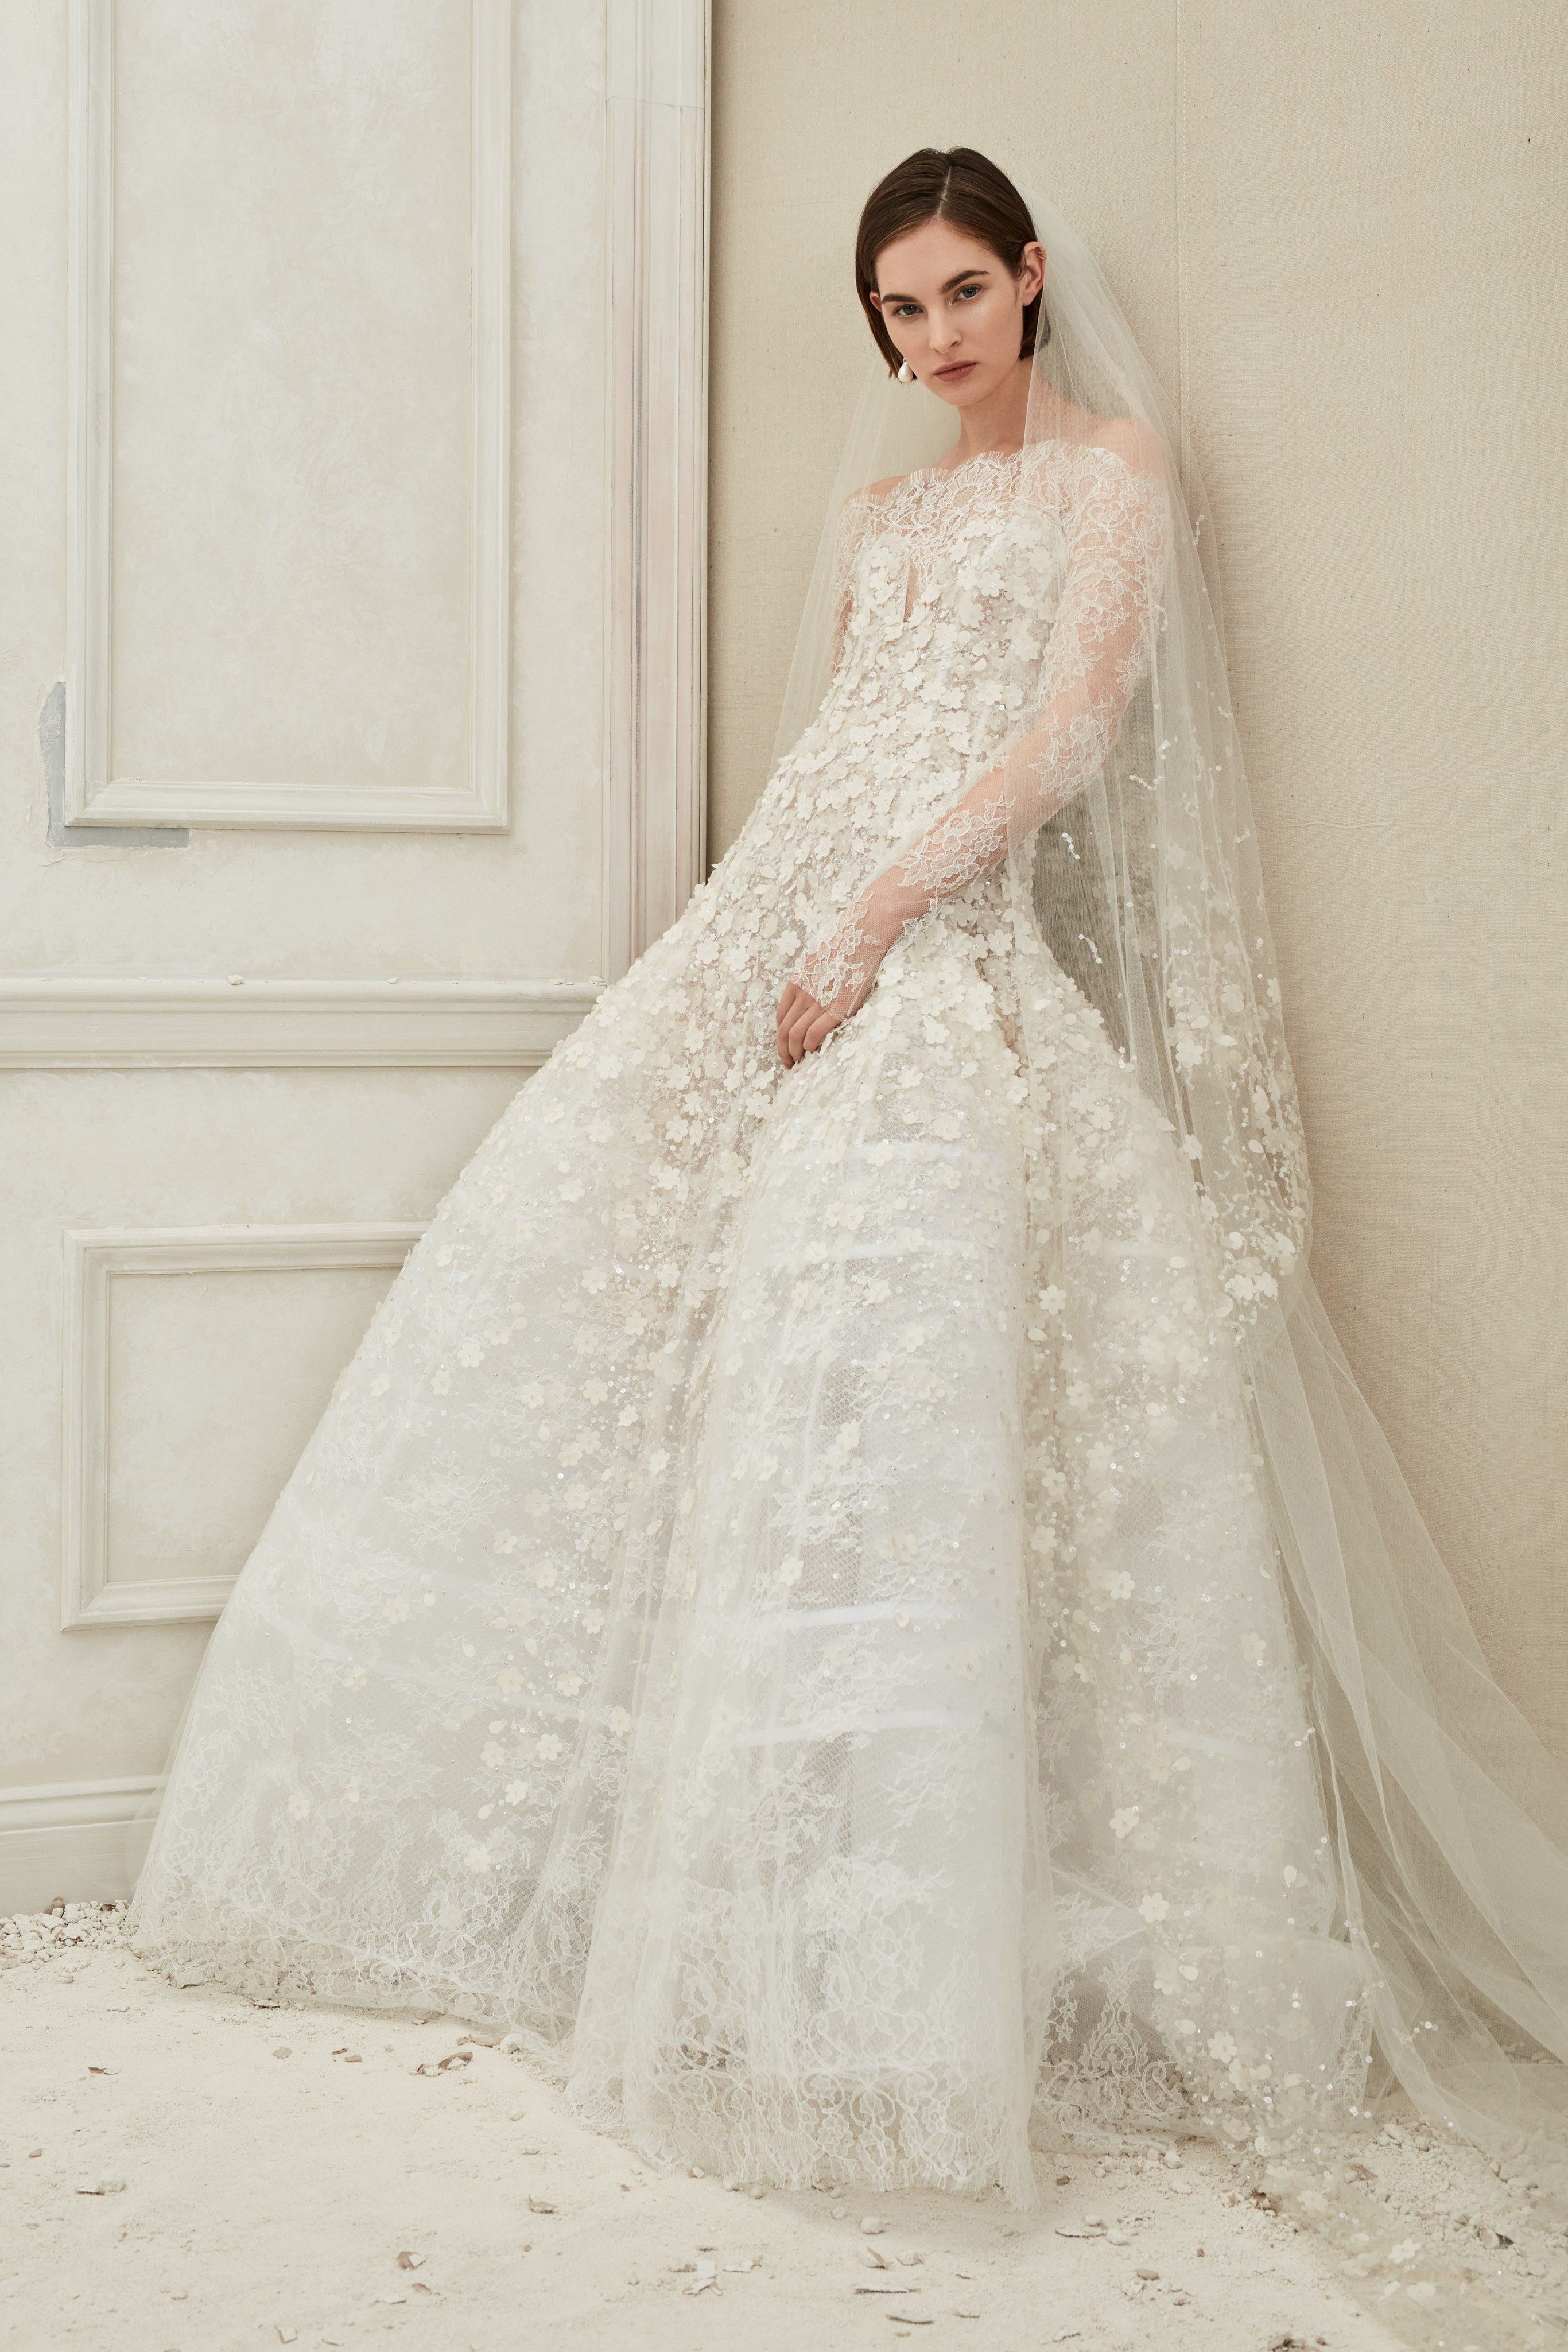 Oscar De La Renta Bridal Fall 2019 Fashion Show With Images Wedding Dress Couture Beautiful Wedding Dresses Wedding Dress Sleeves